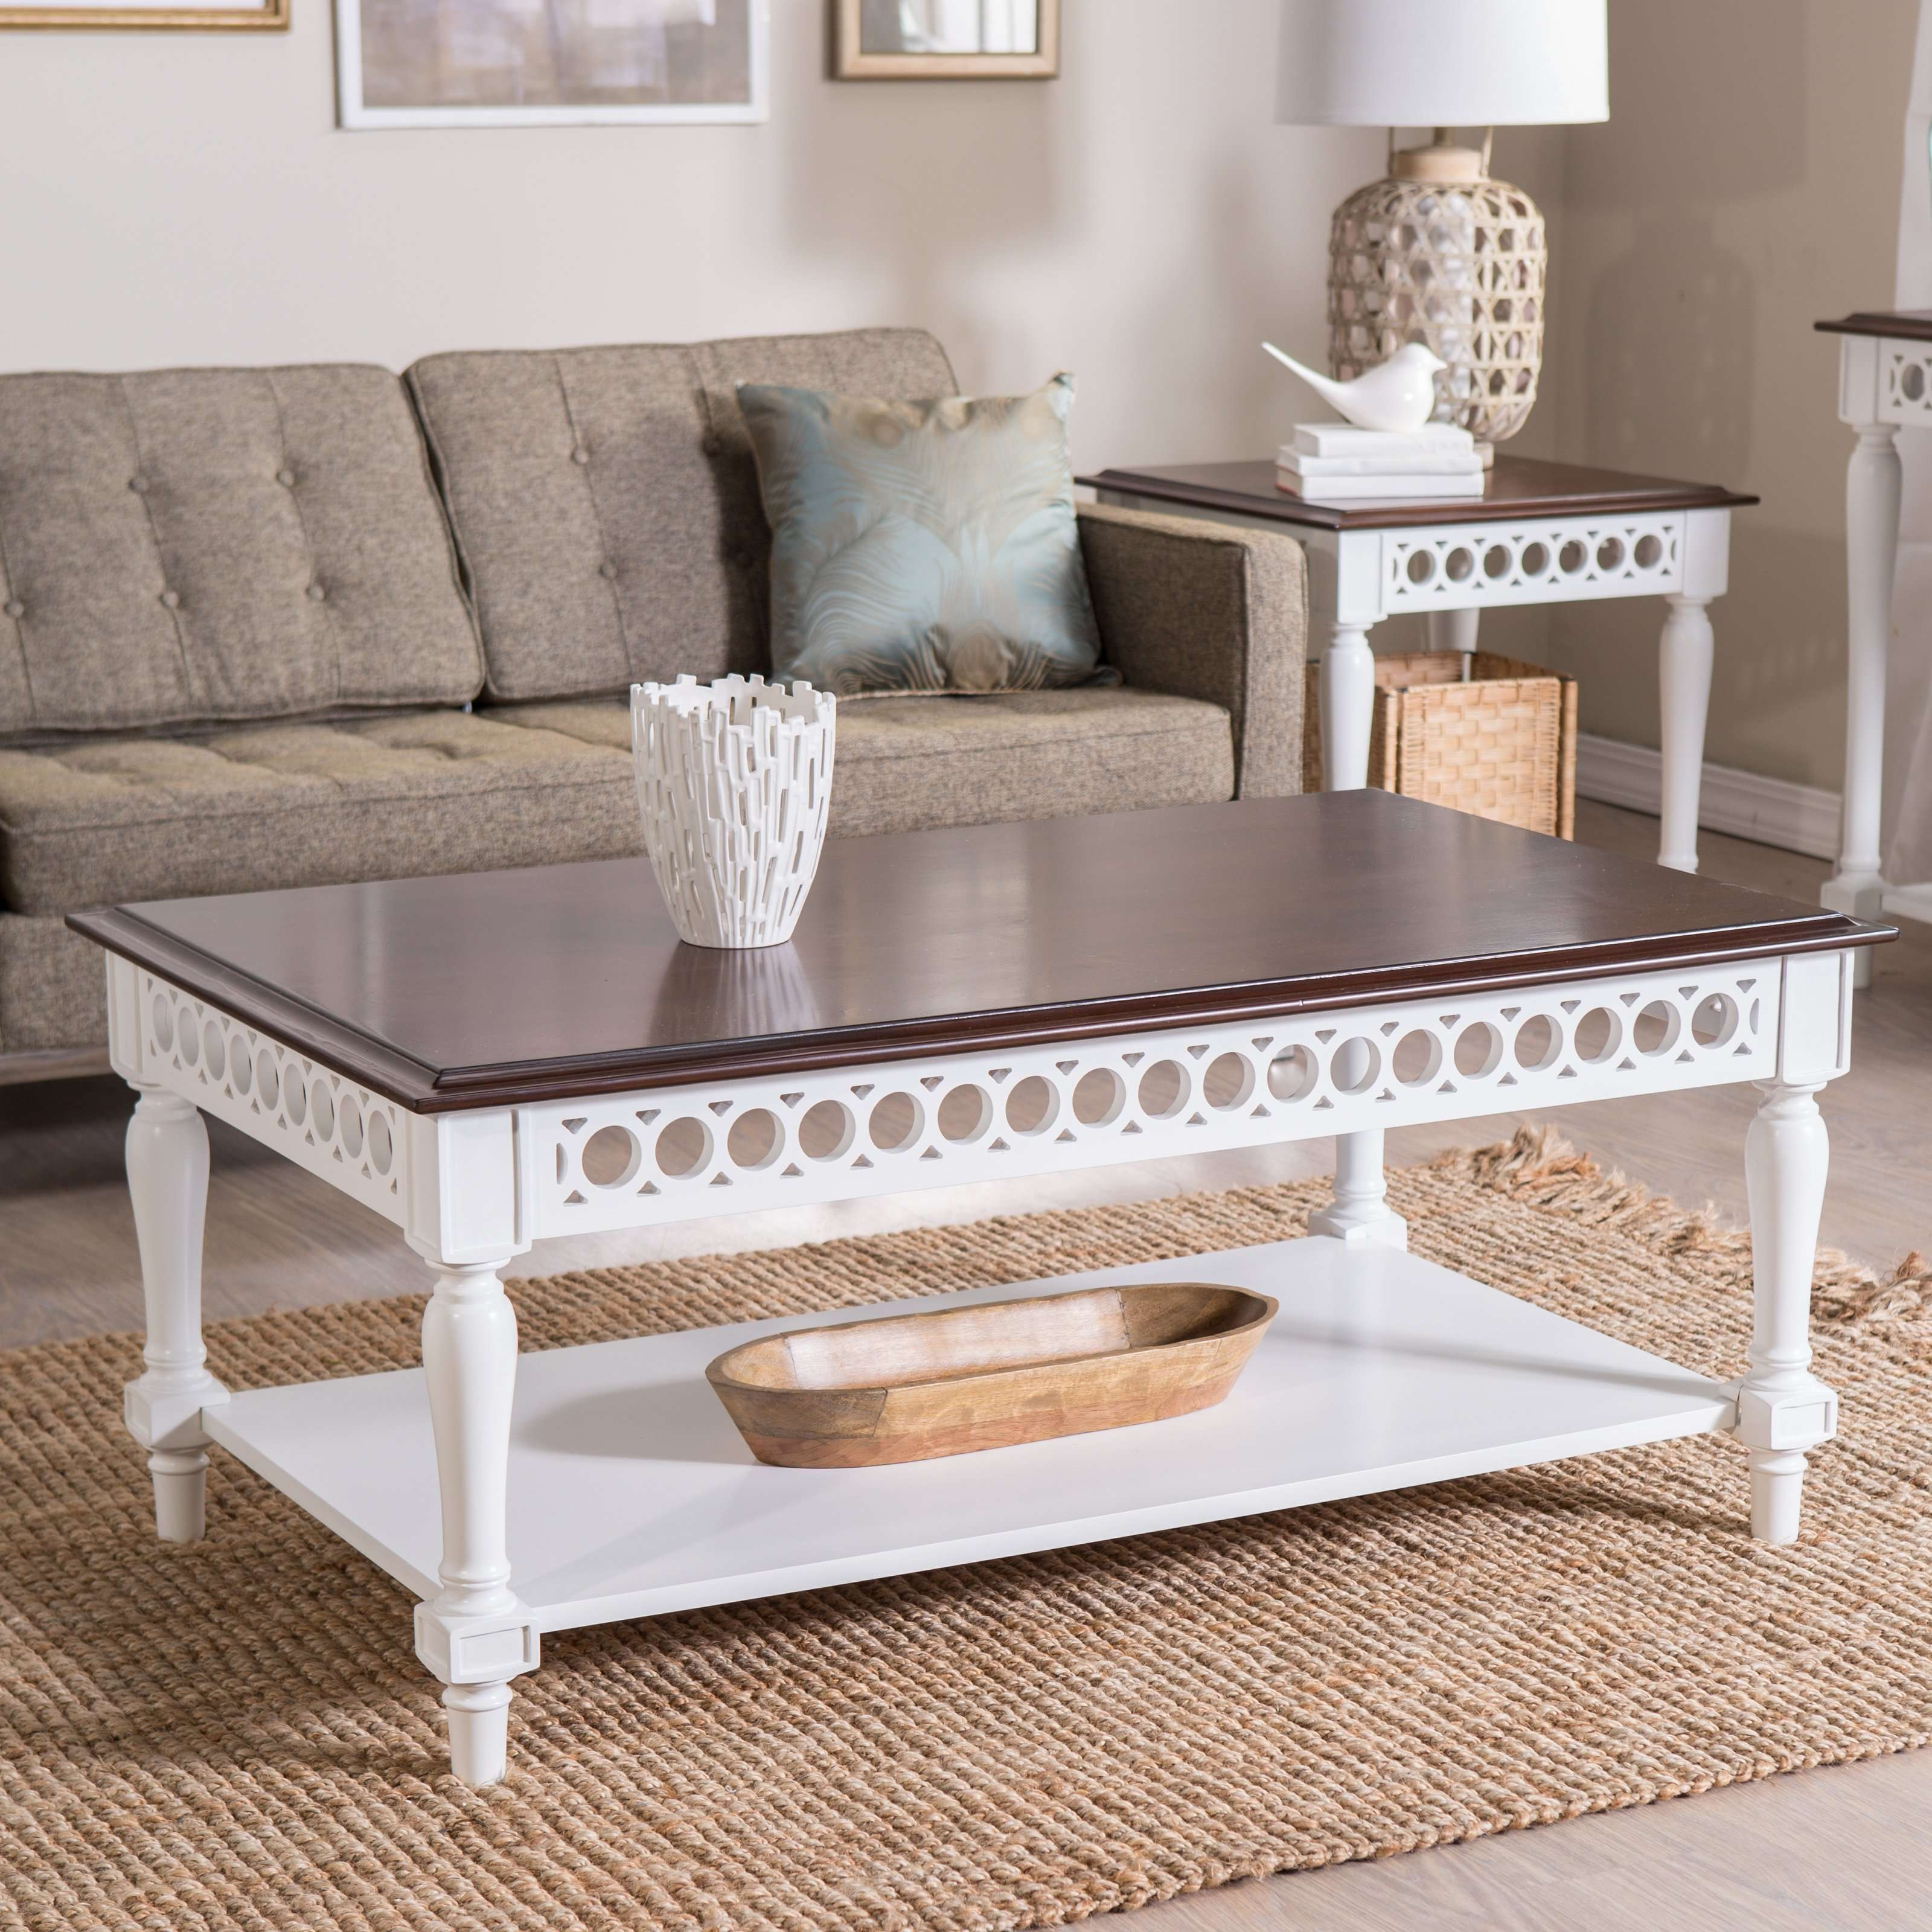 Wooden Coffee Table With White Base And Brown Coffee Table Top For Inside Latest White And Brown Coffee Tables (View 19 of 20)